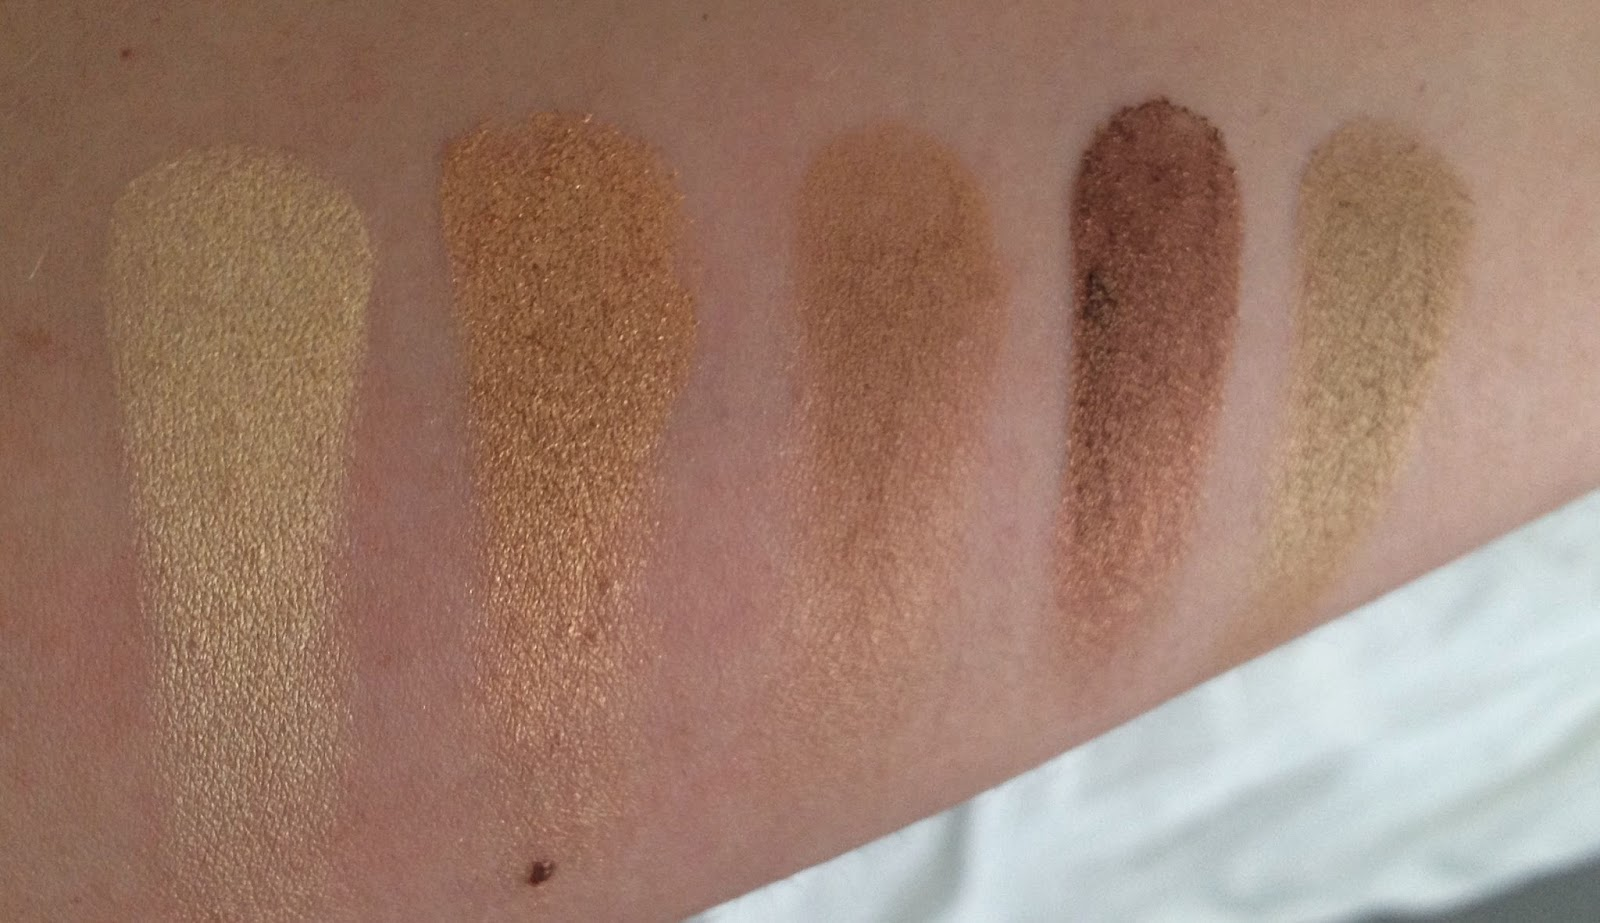 MAC Warm Neutral Palette - bottom row swatches L-R: Lemon Tart, Creative Copper, Butterfudge, Divine Decadence and Unwind